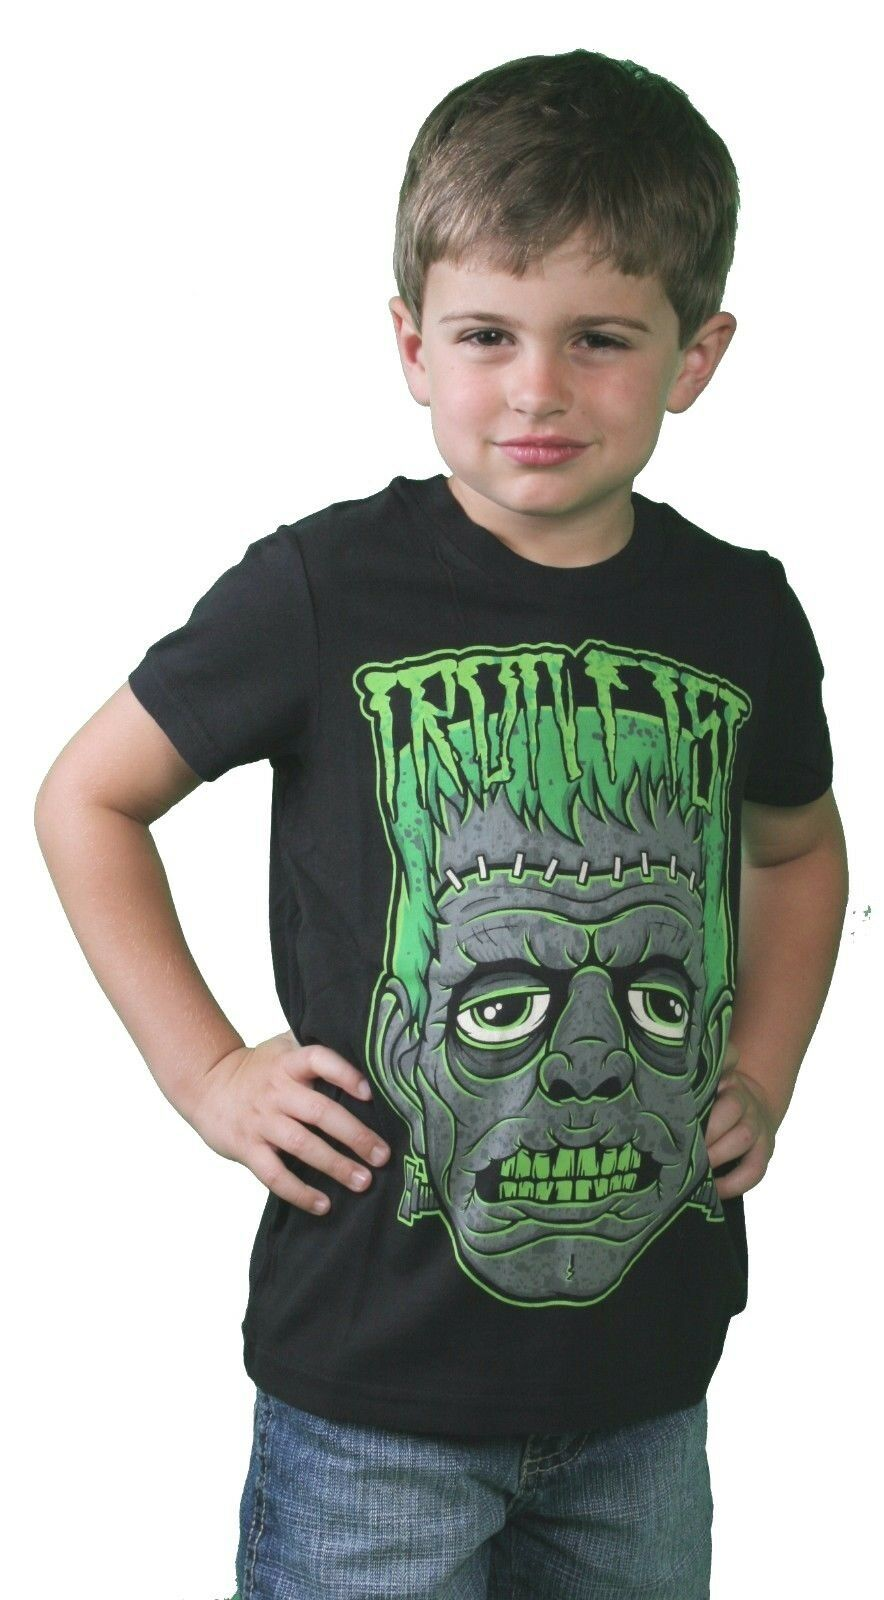 Iron Fist Black Little Boy's Cranky Frank Zombie Monster Kids Youth T-Shirt 4-5